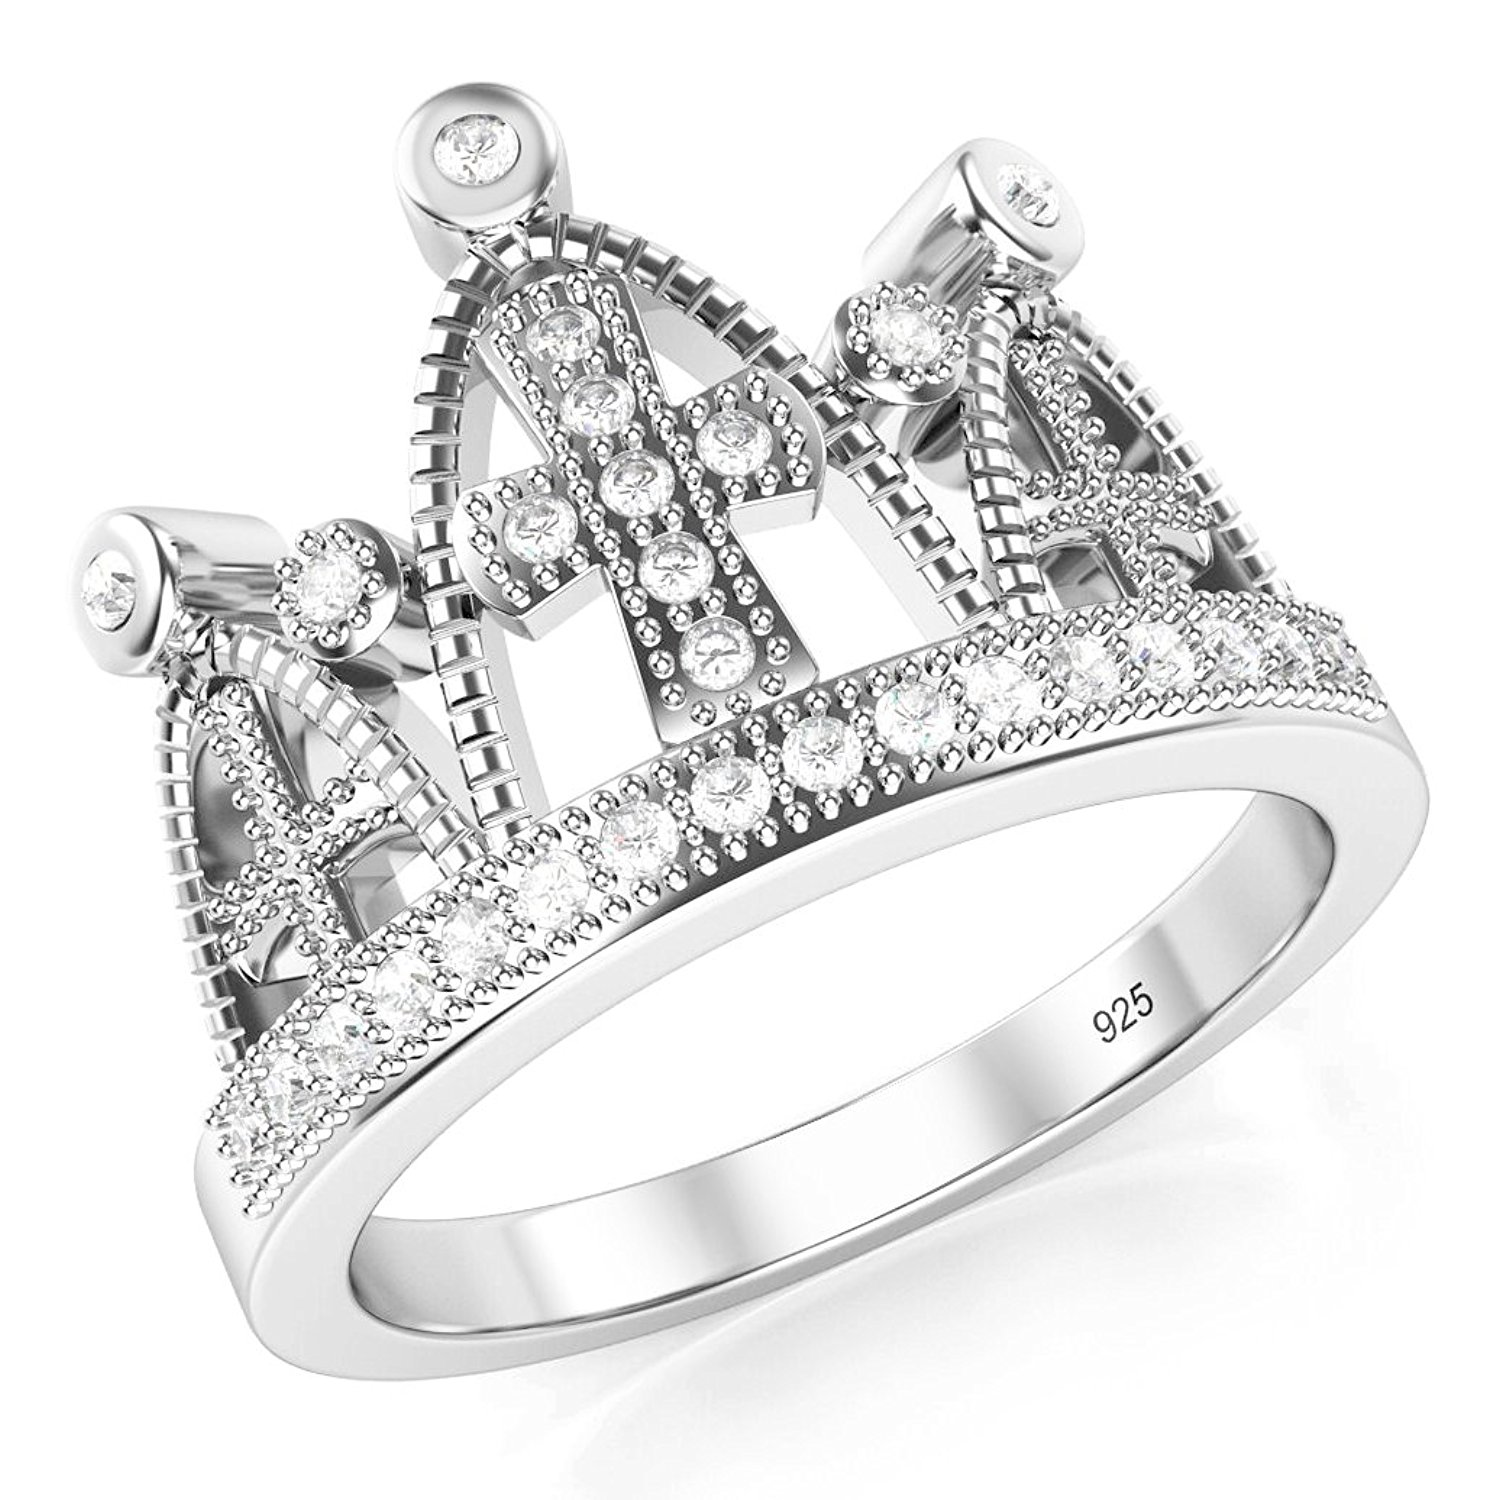 a3ddd6f70 Get Quotations · 925 Sterling Silver Cubic Zirconia Princess Cross Crown  Tiara CZ Band Ring